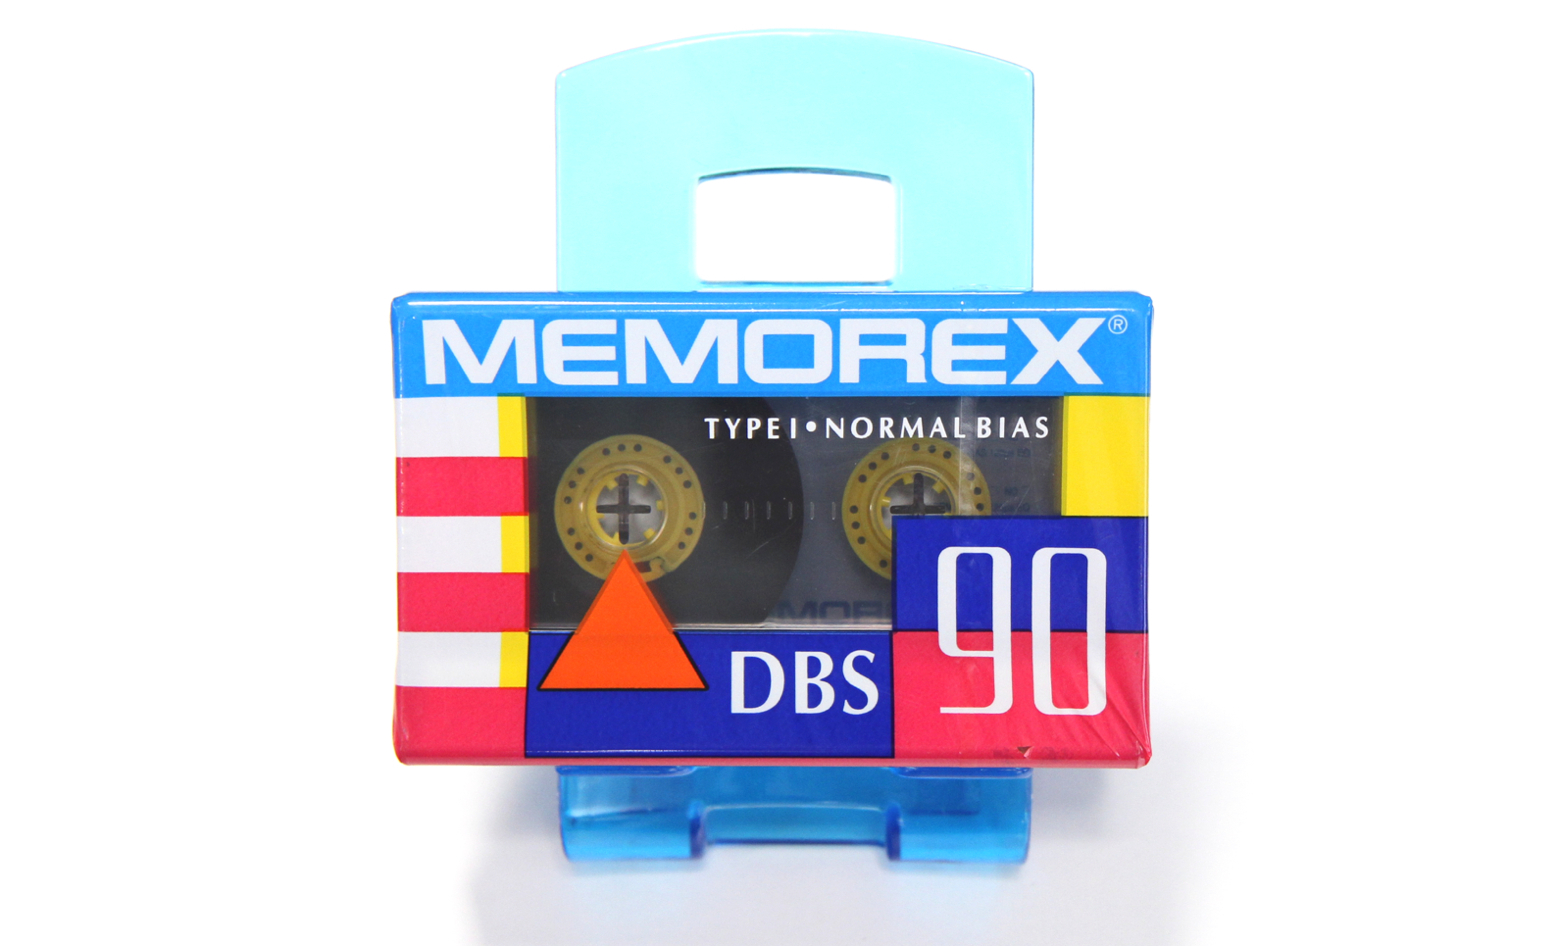 MEMOREX DBS-90 Normal Bias